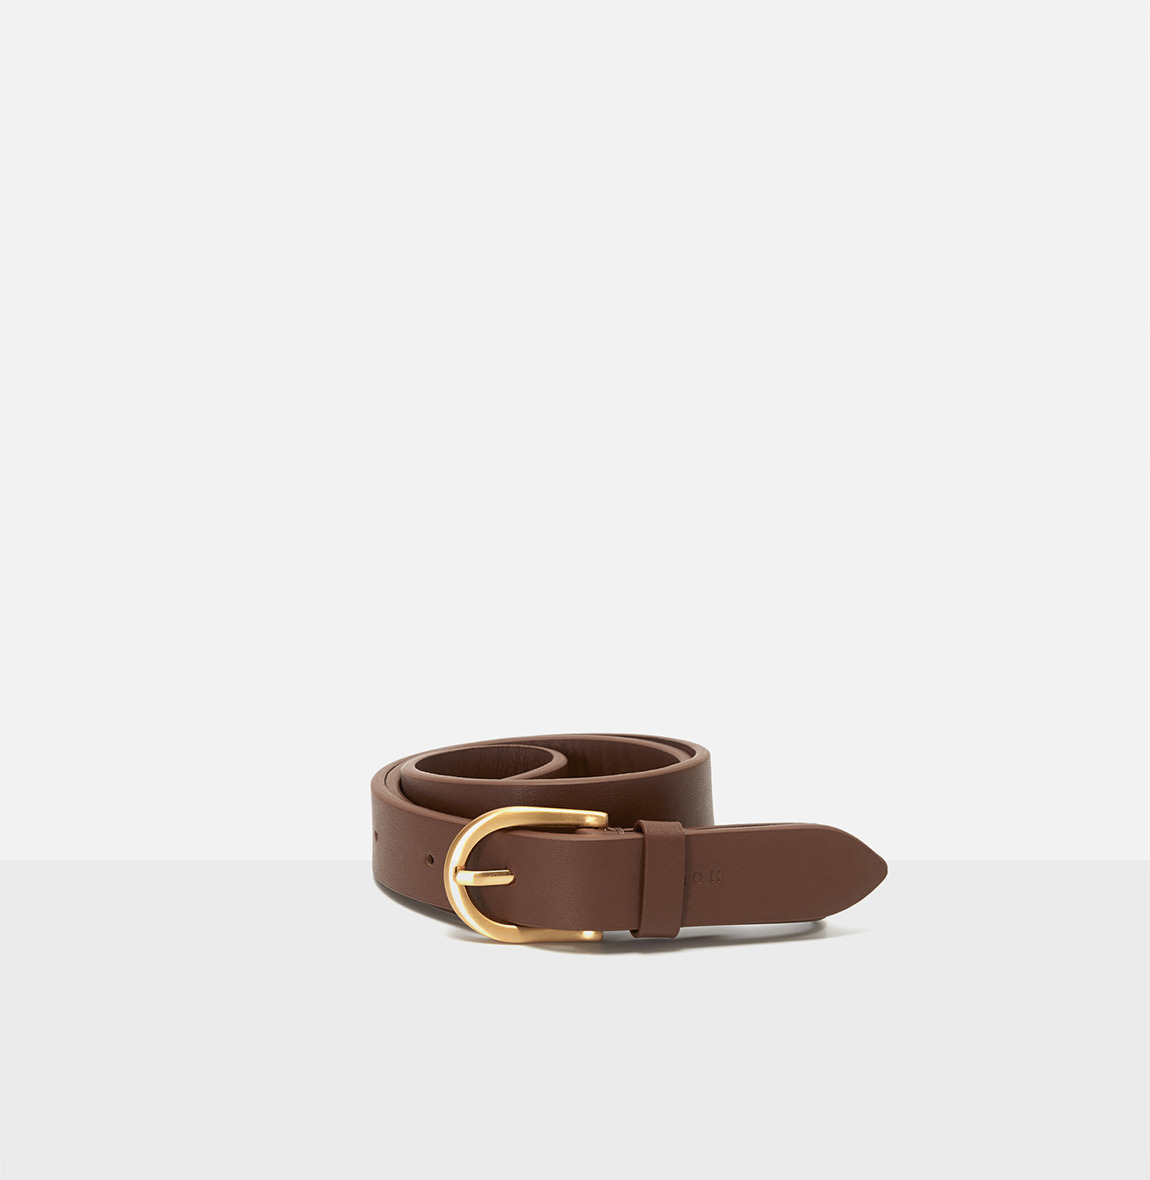 Around Belt Smoky Tan